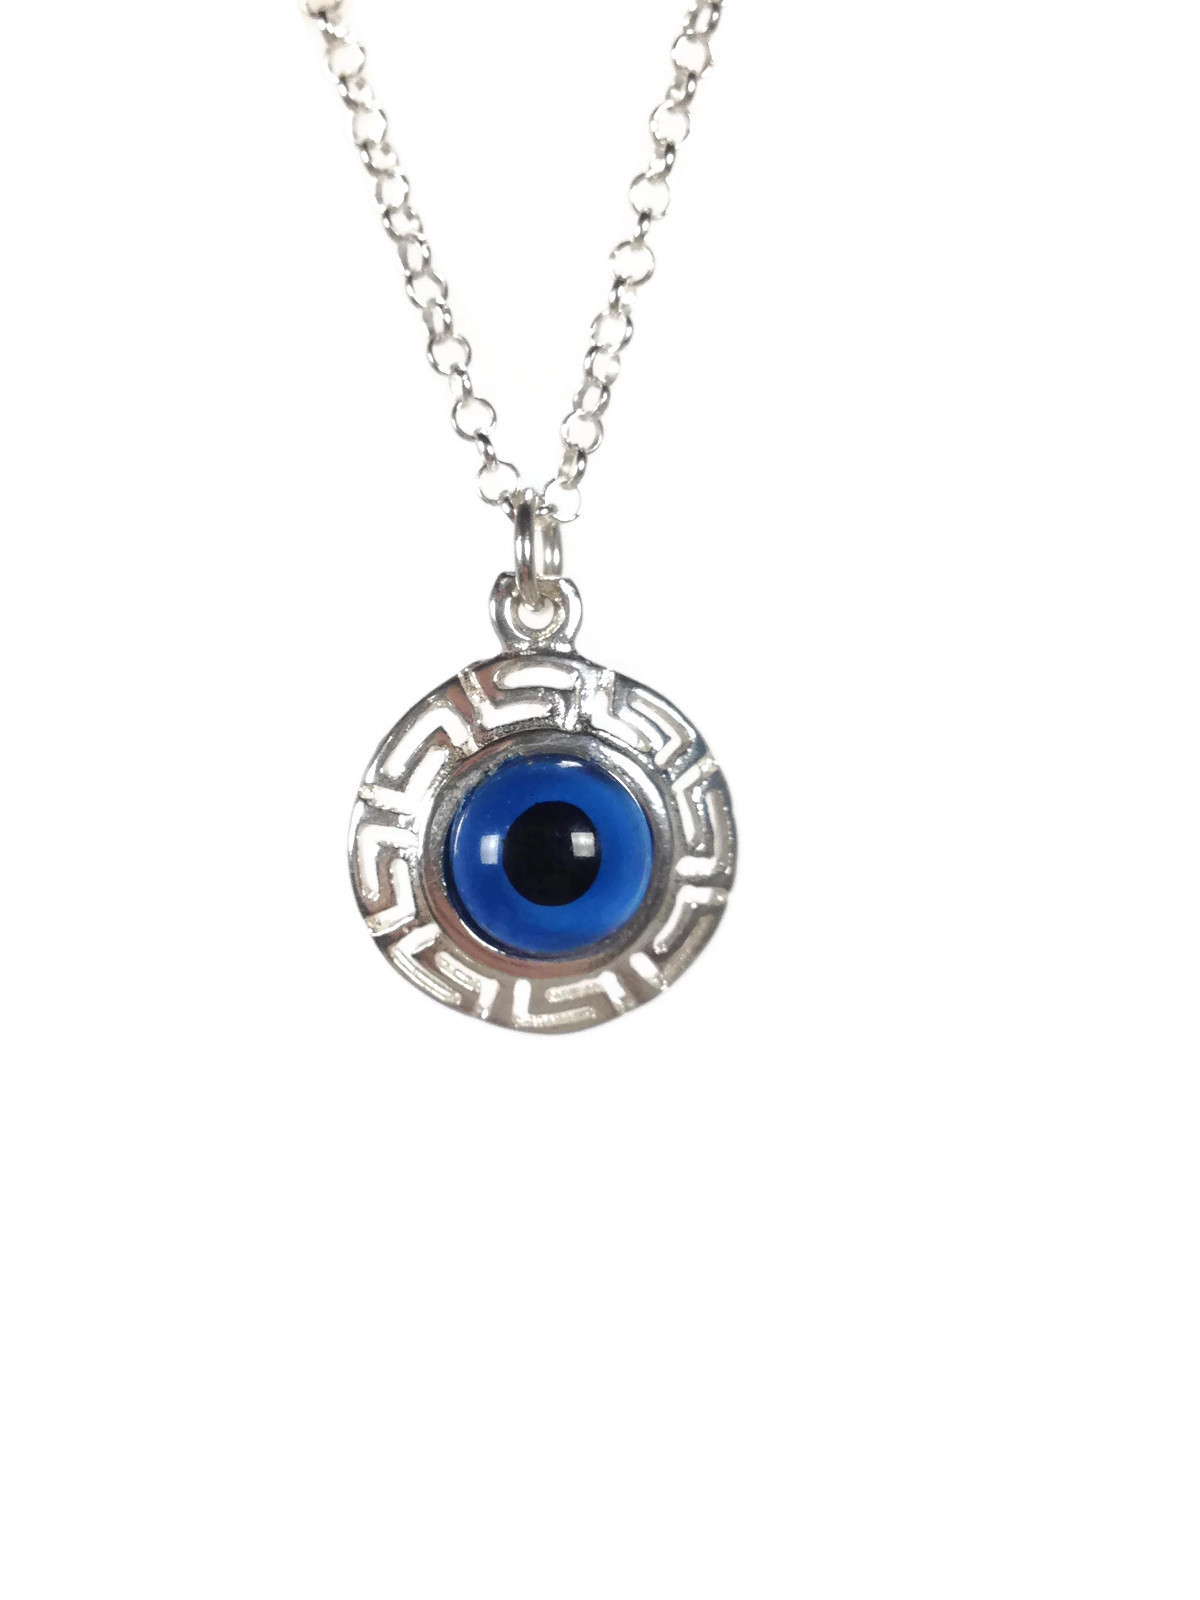 Find great deals on eBay for greek evil eye charm. Shop with confidence.